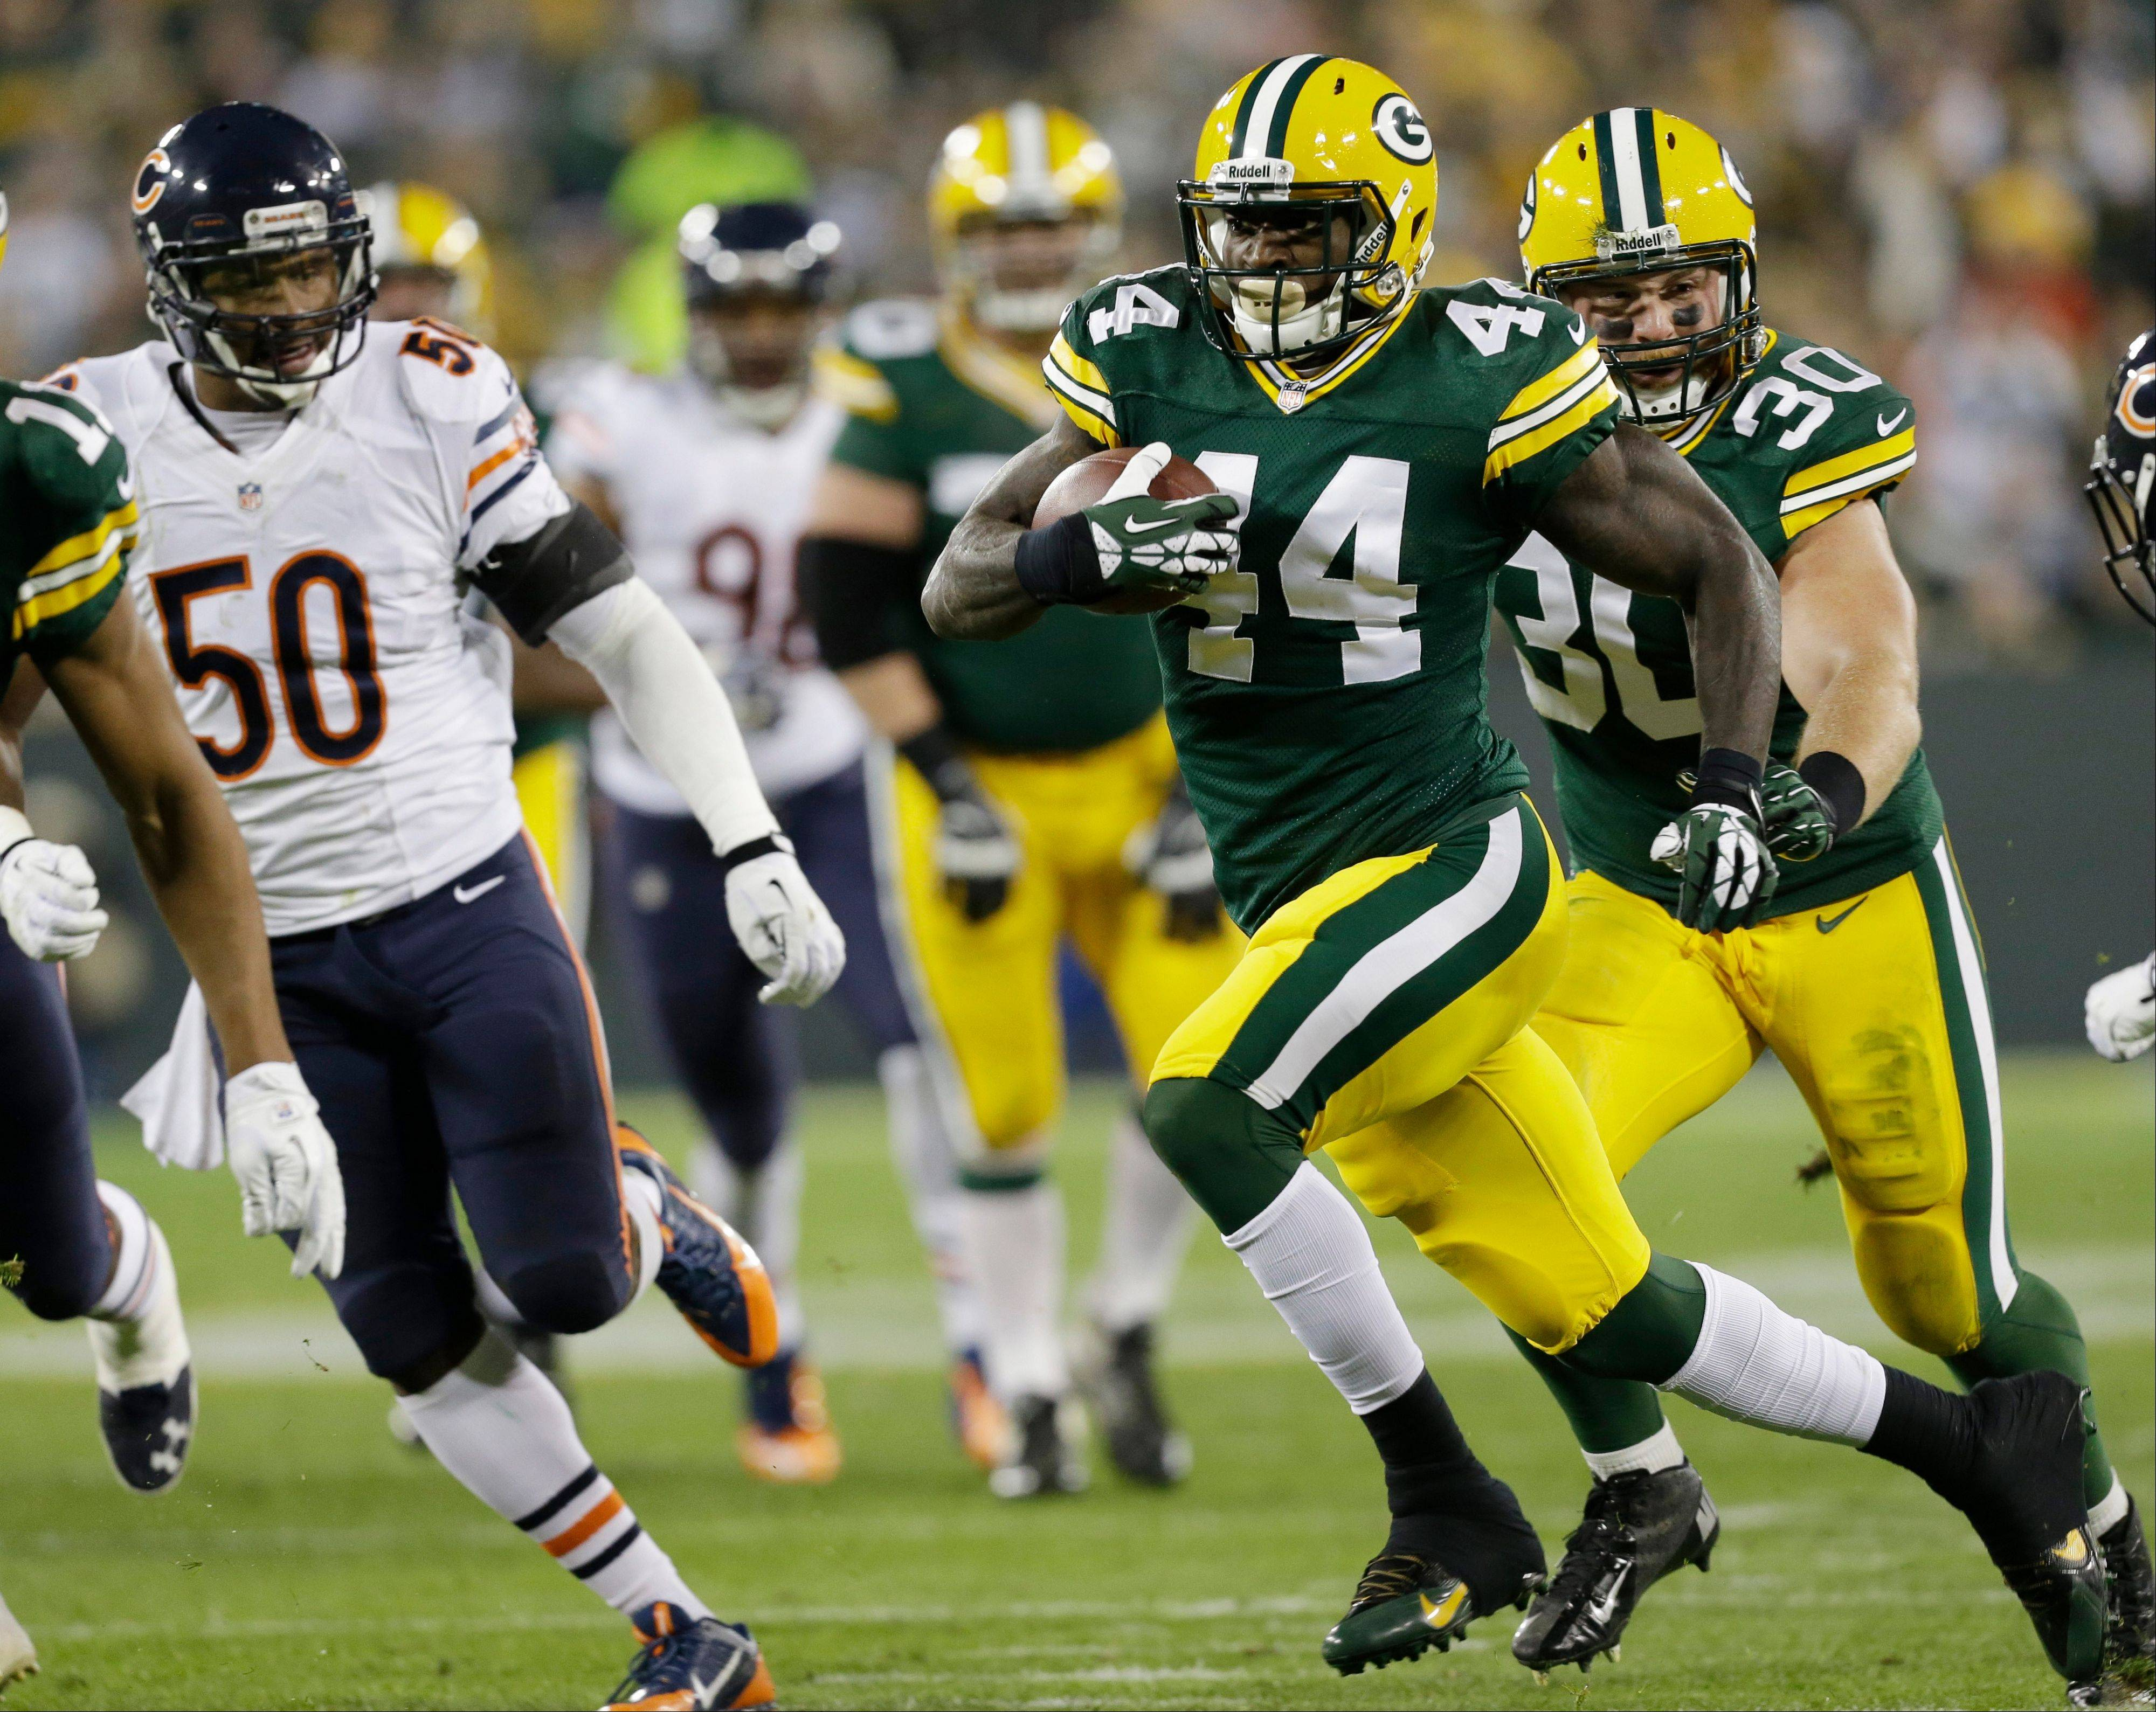 Green Bay Packers' James Starks (44) breaks away for a 32-yard touchdown run during the first half.